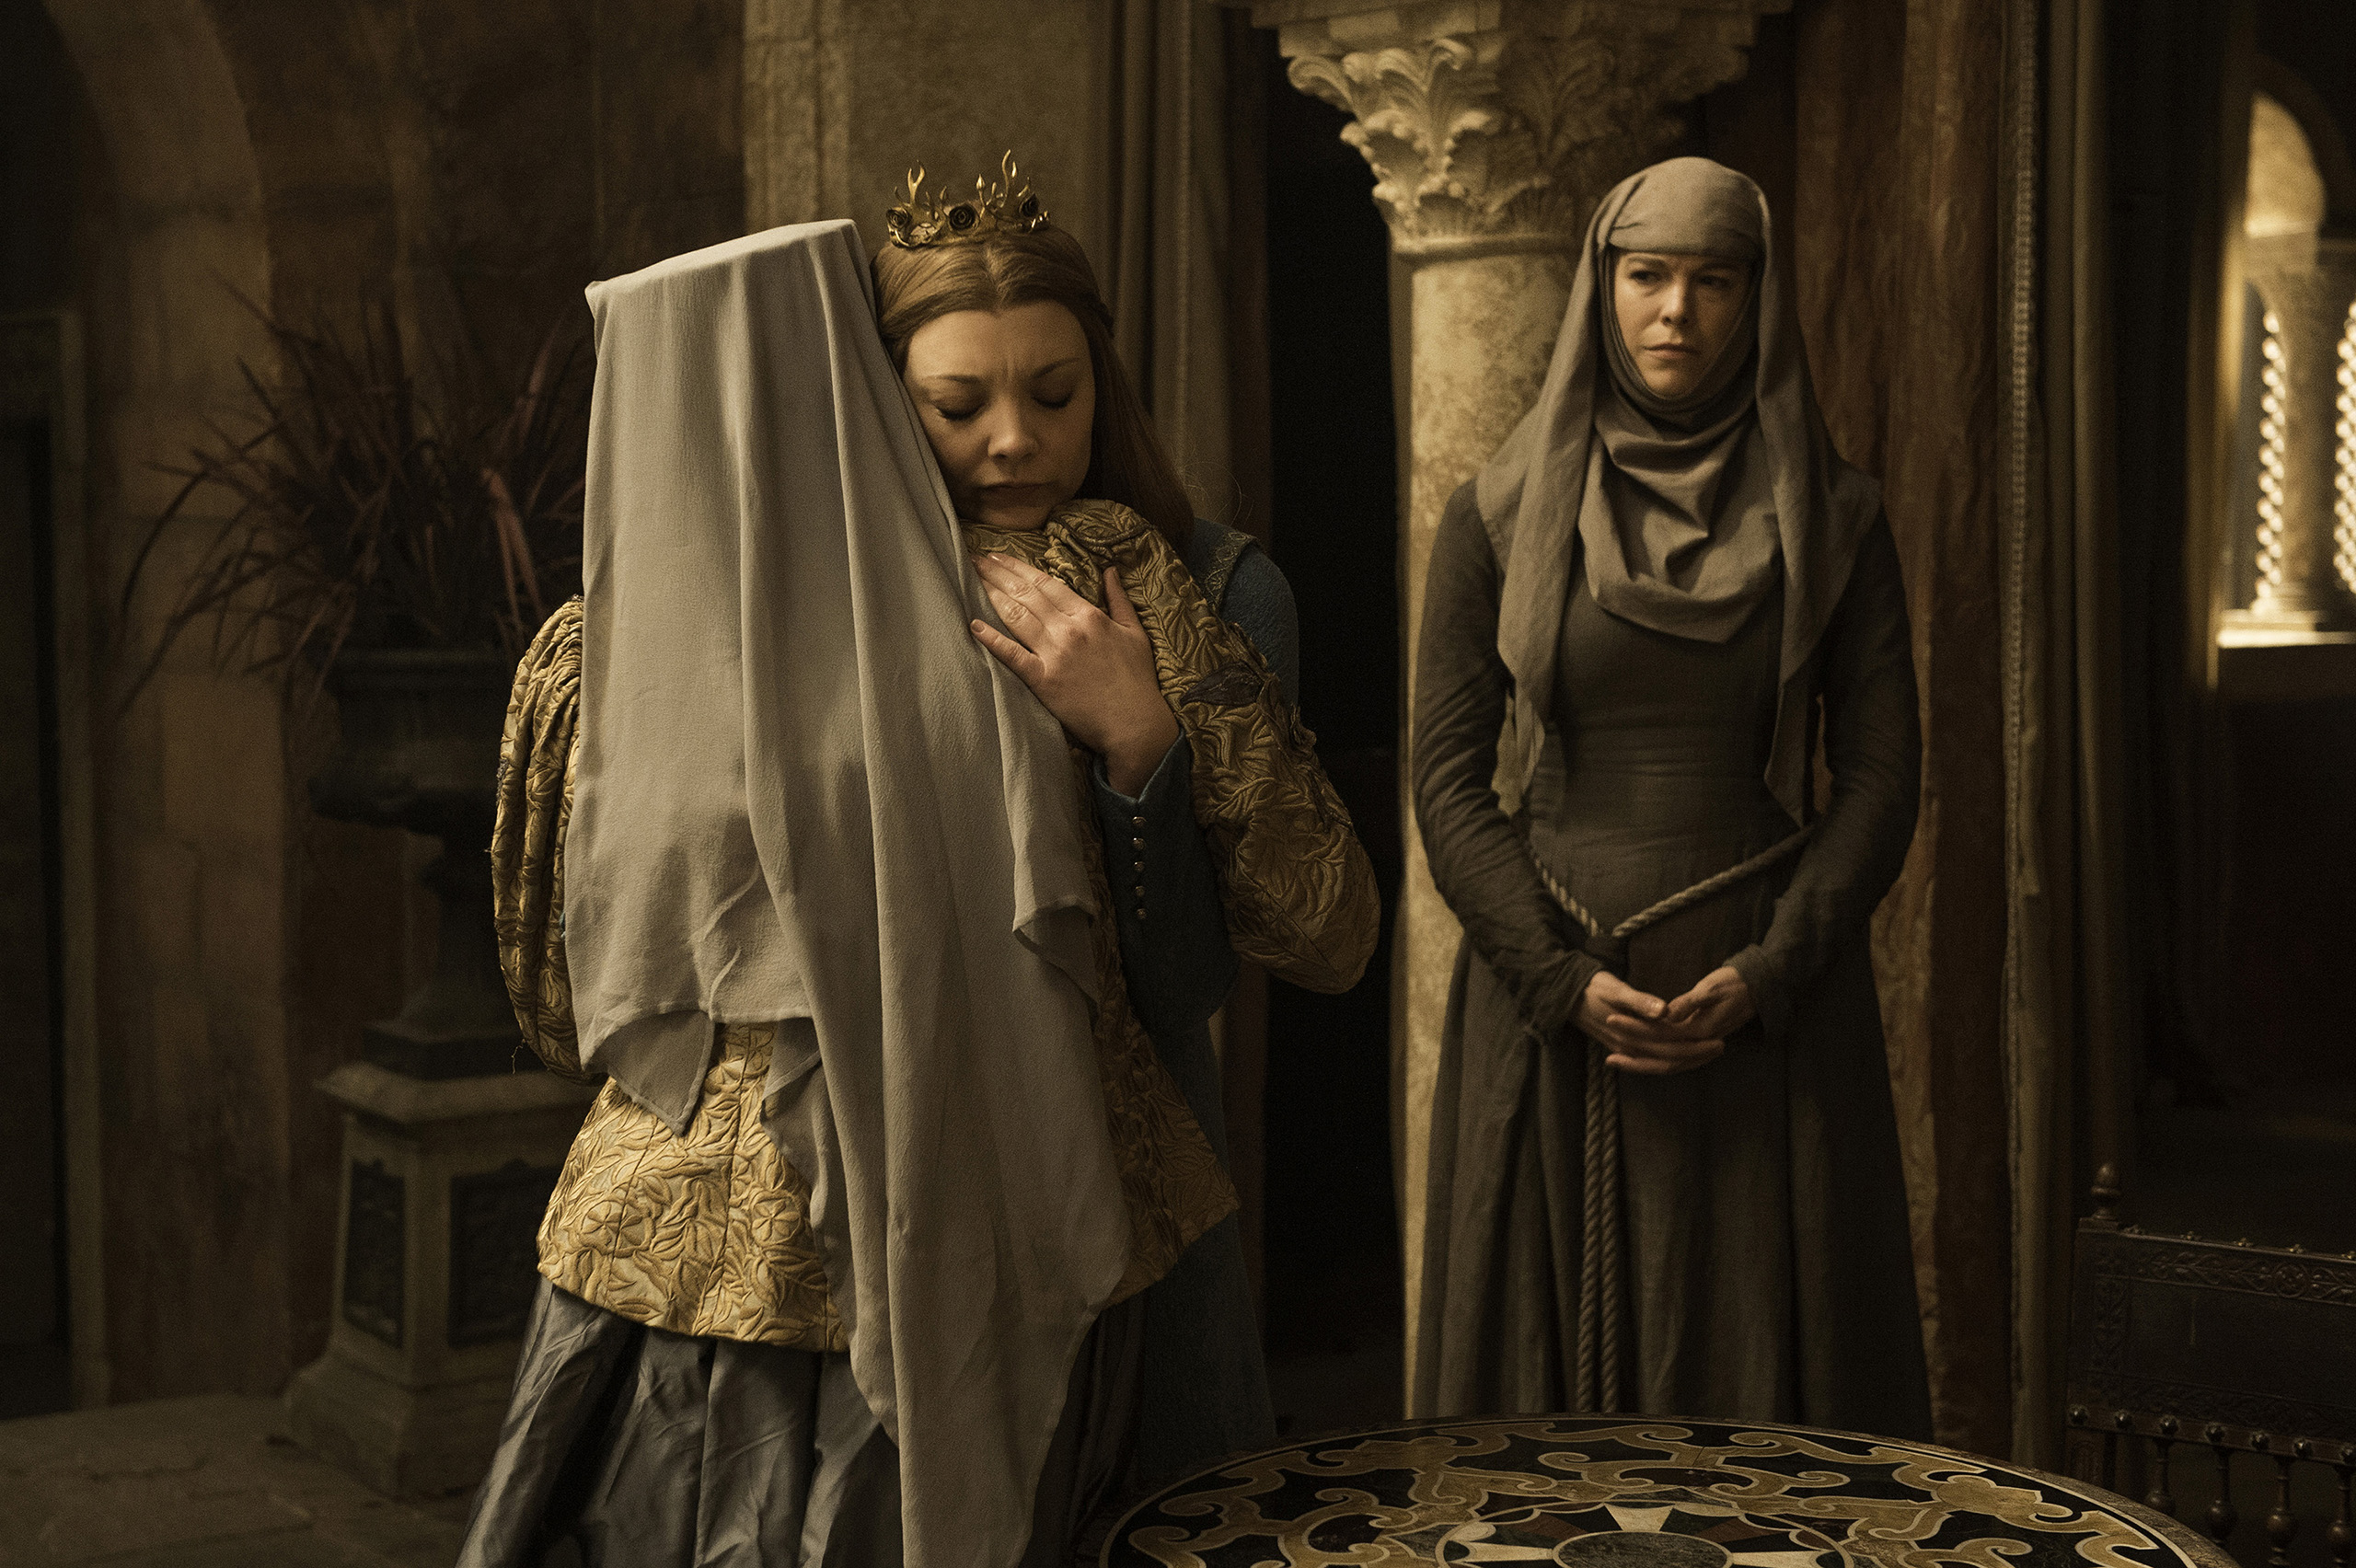 Diana Rigg (Olenna Tyrell), Natalie Dormer (Margery Tyrell), and Hannah Waddingham (Septa Unella) in Game of Thrones.